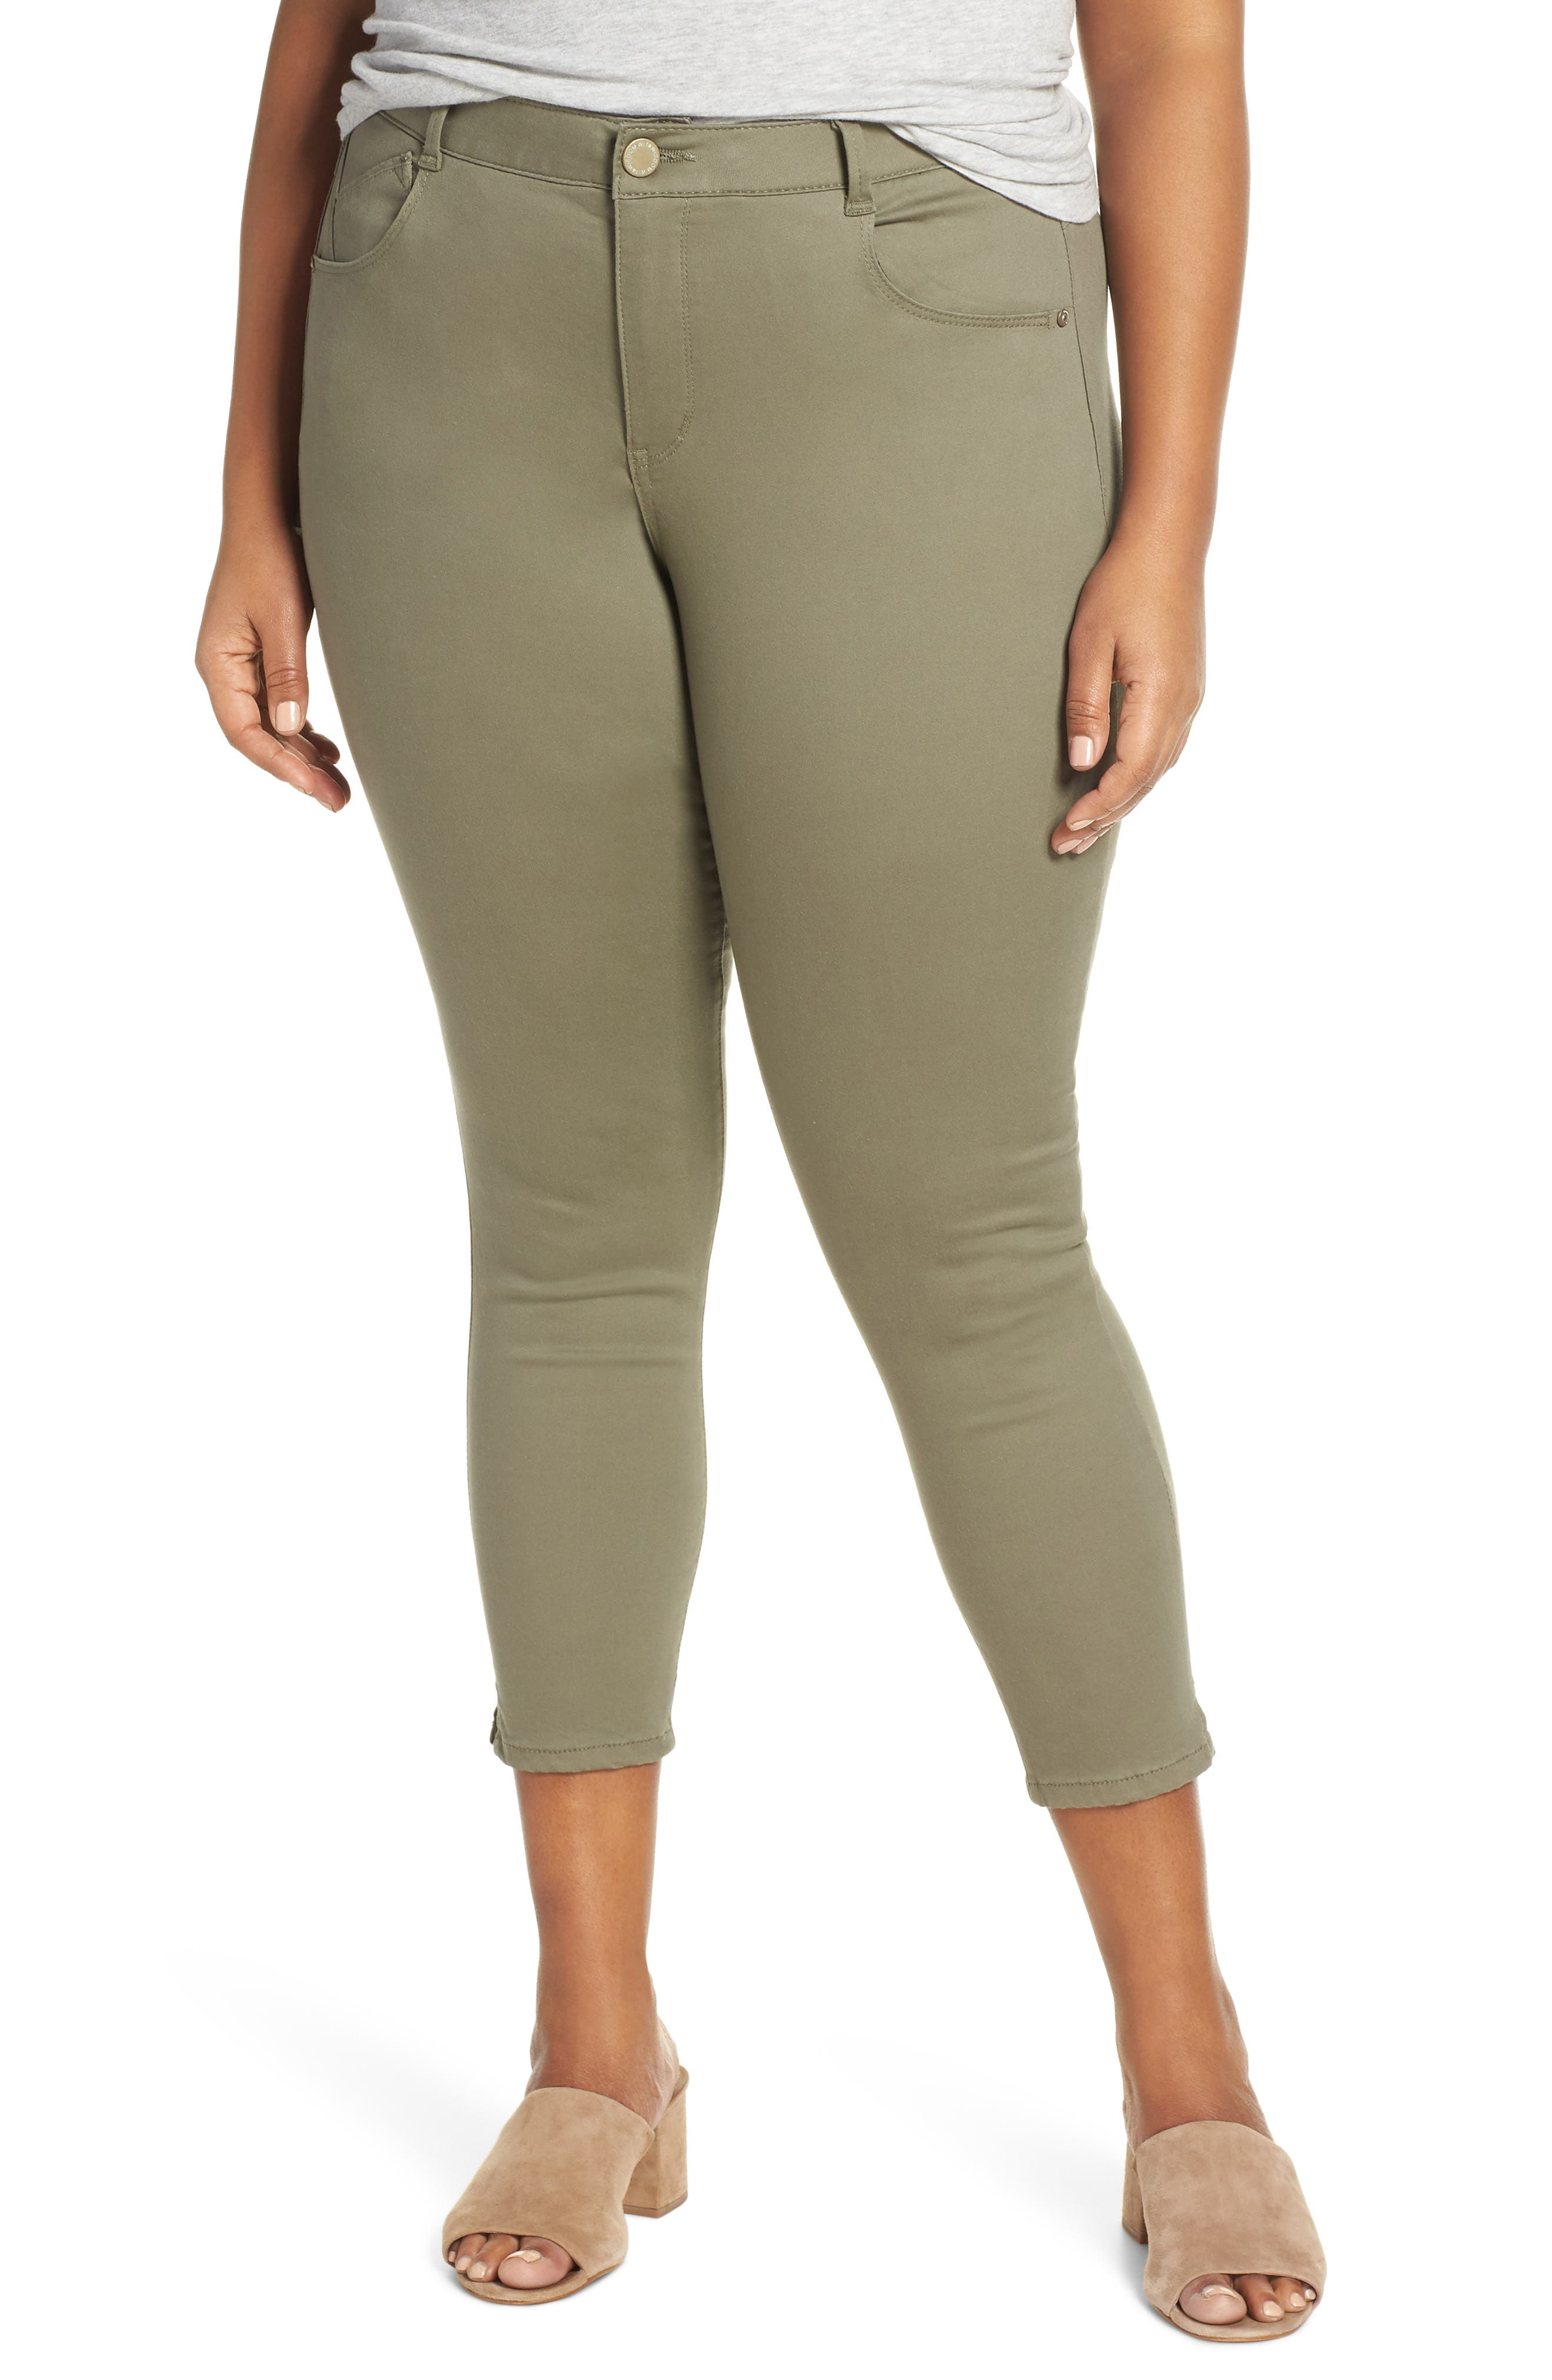 Ab-Solution High Waist Ankle Skinny Pants,                             Main thumbnail 1, color,                             LOK LAUREL